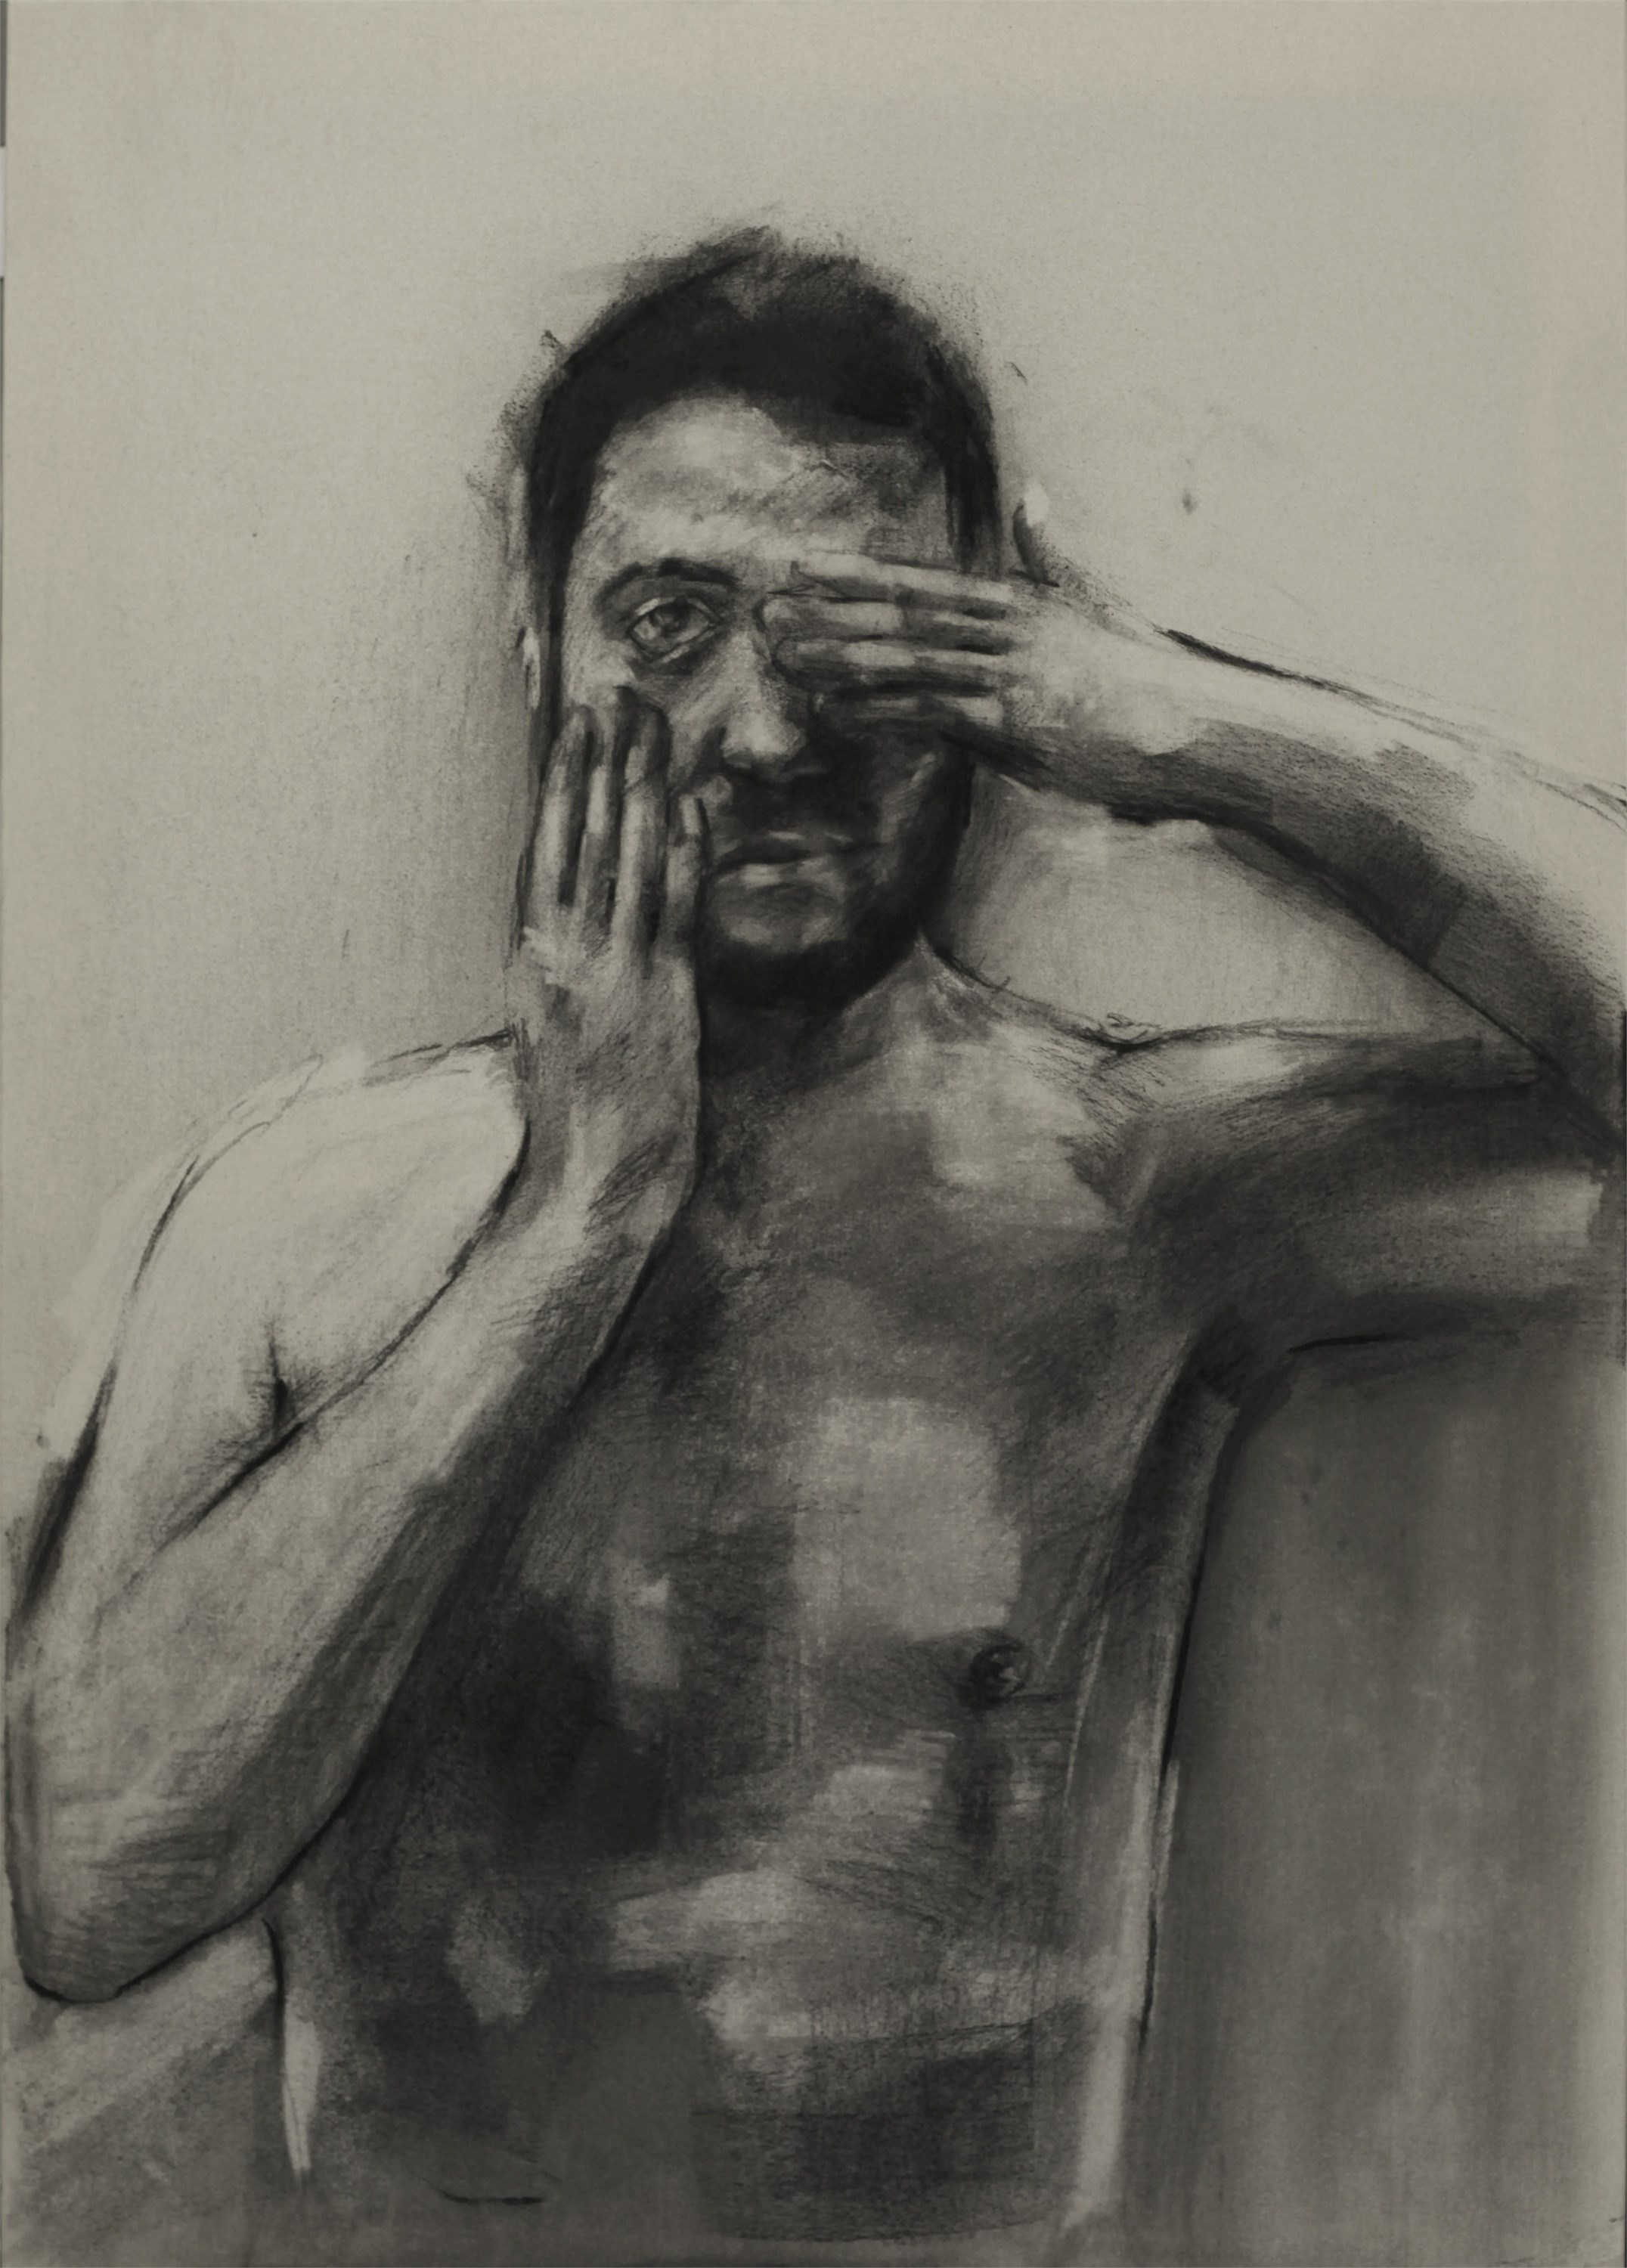 Portrait of I., original B&W Canvas Drawing and Illustration by Giorgos Kapsalakis